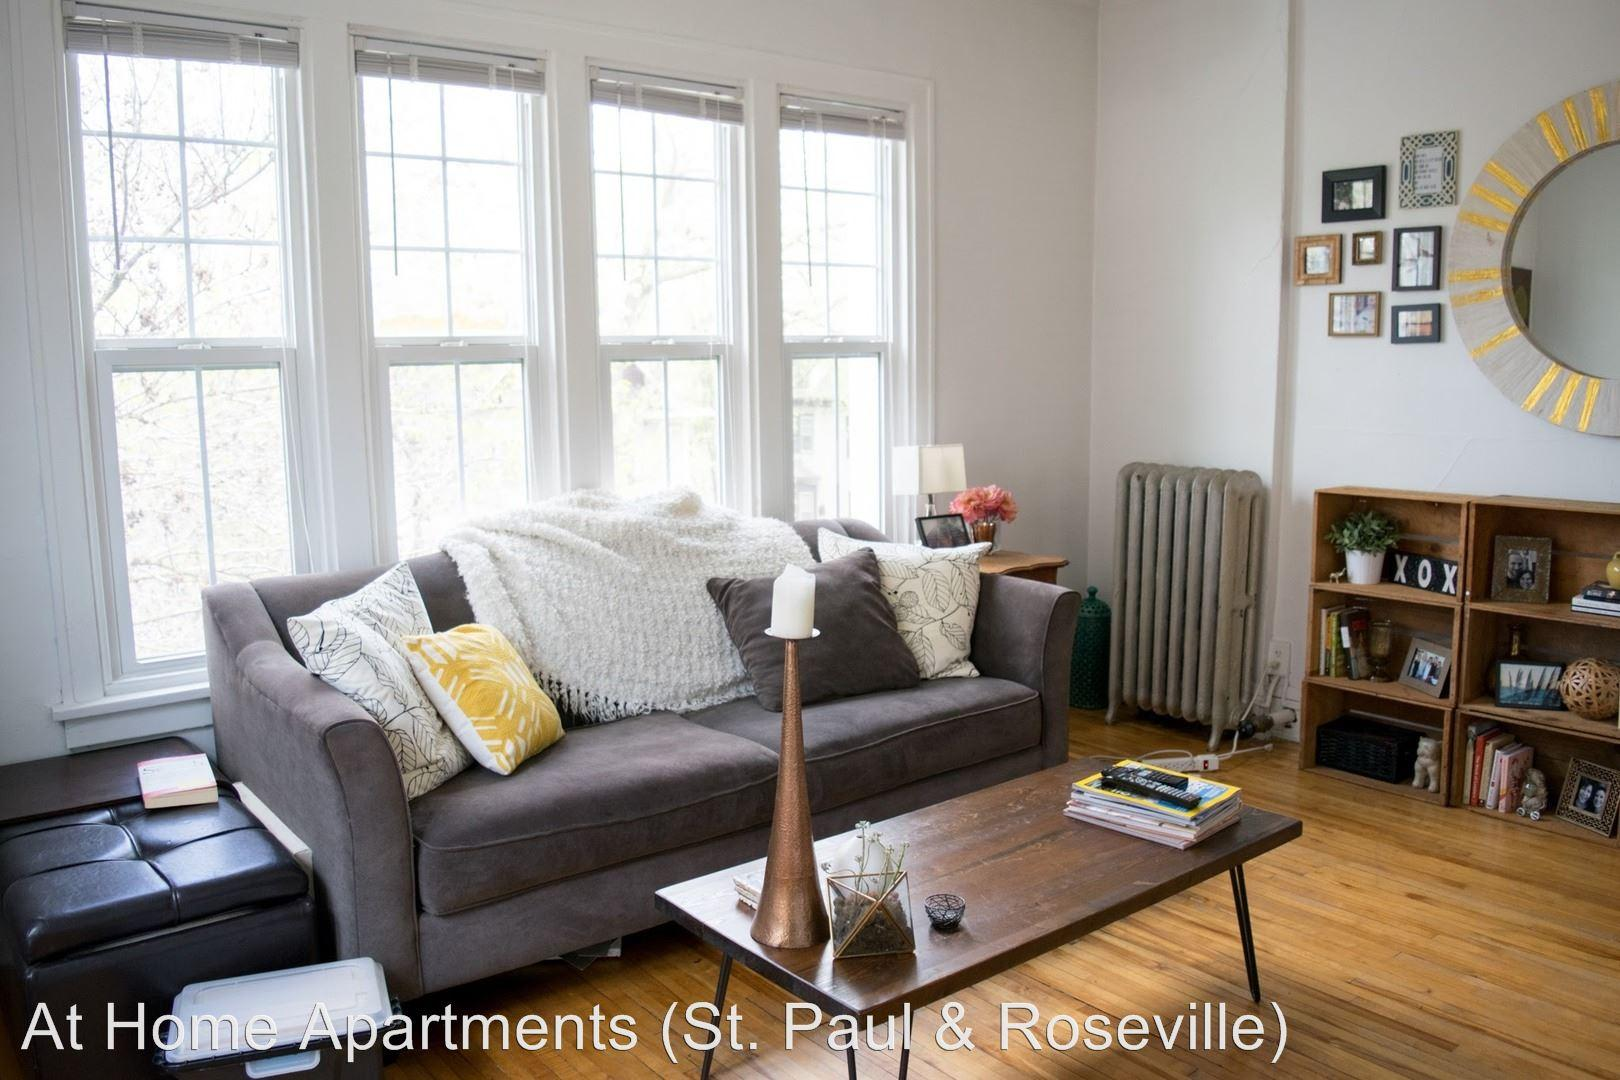 608 Lincoln Ave - 302